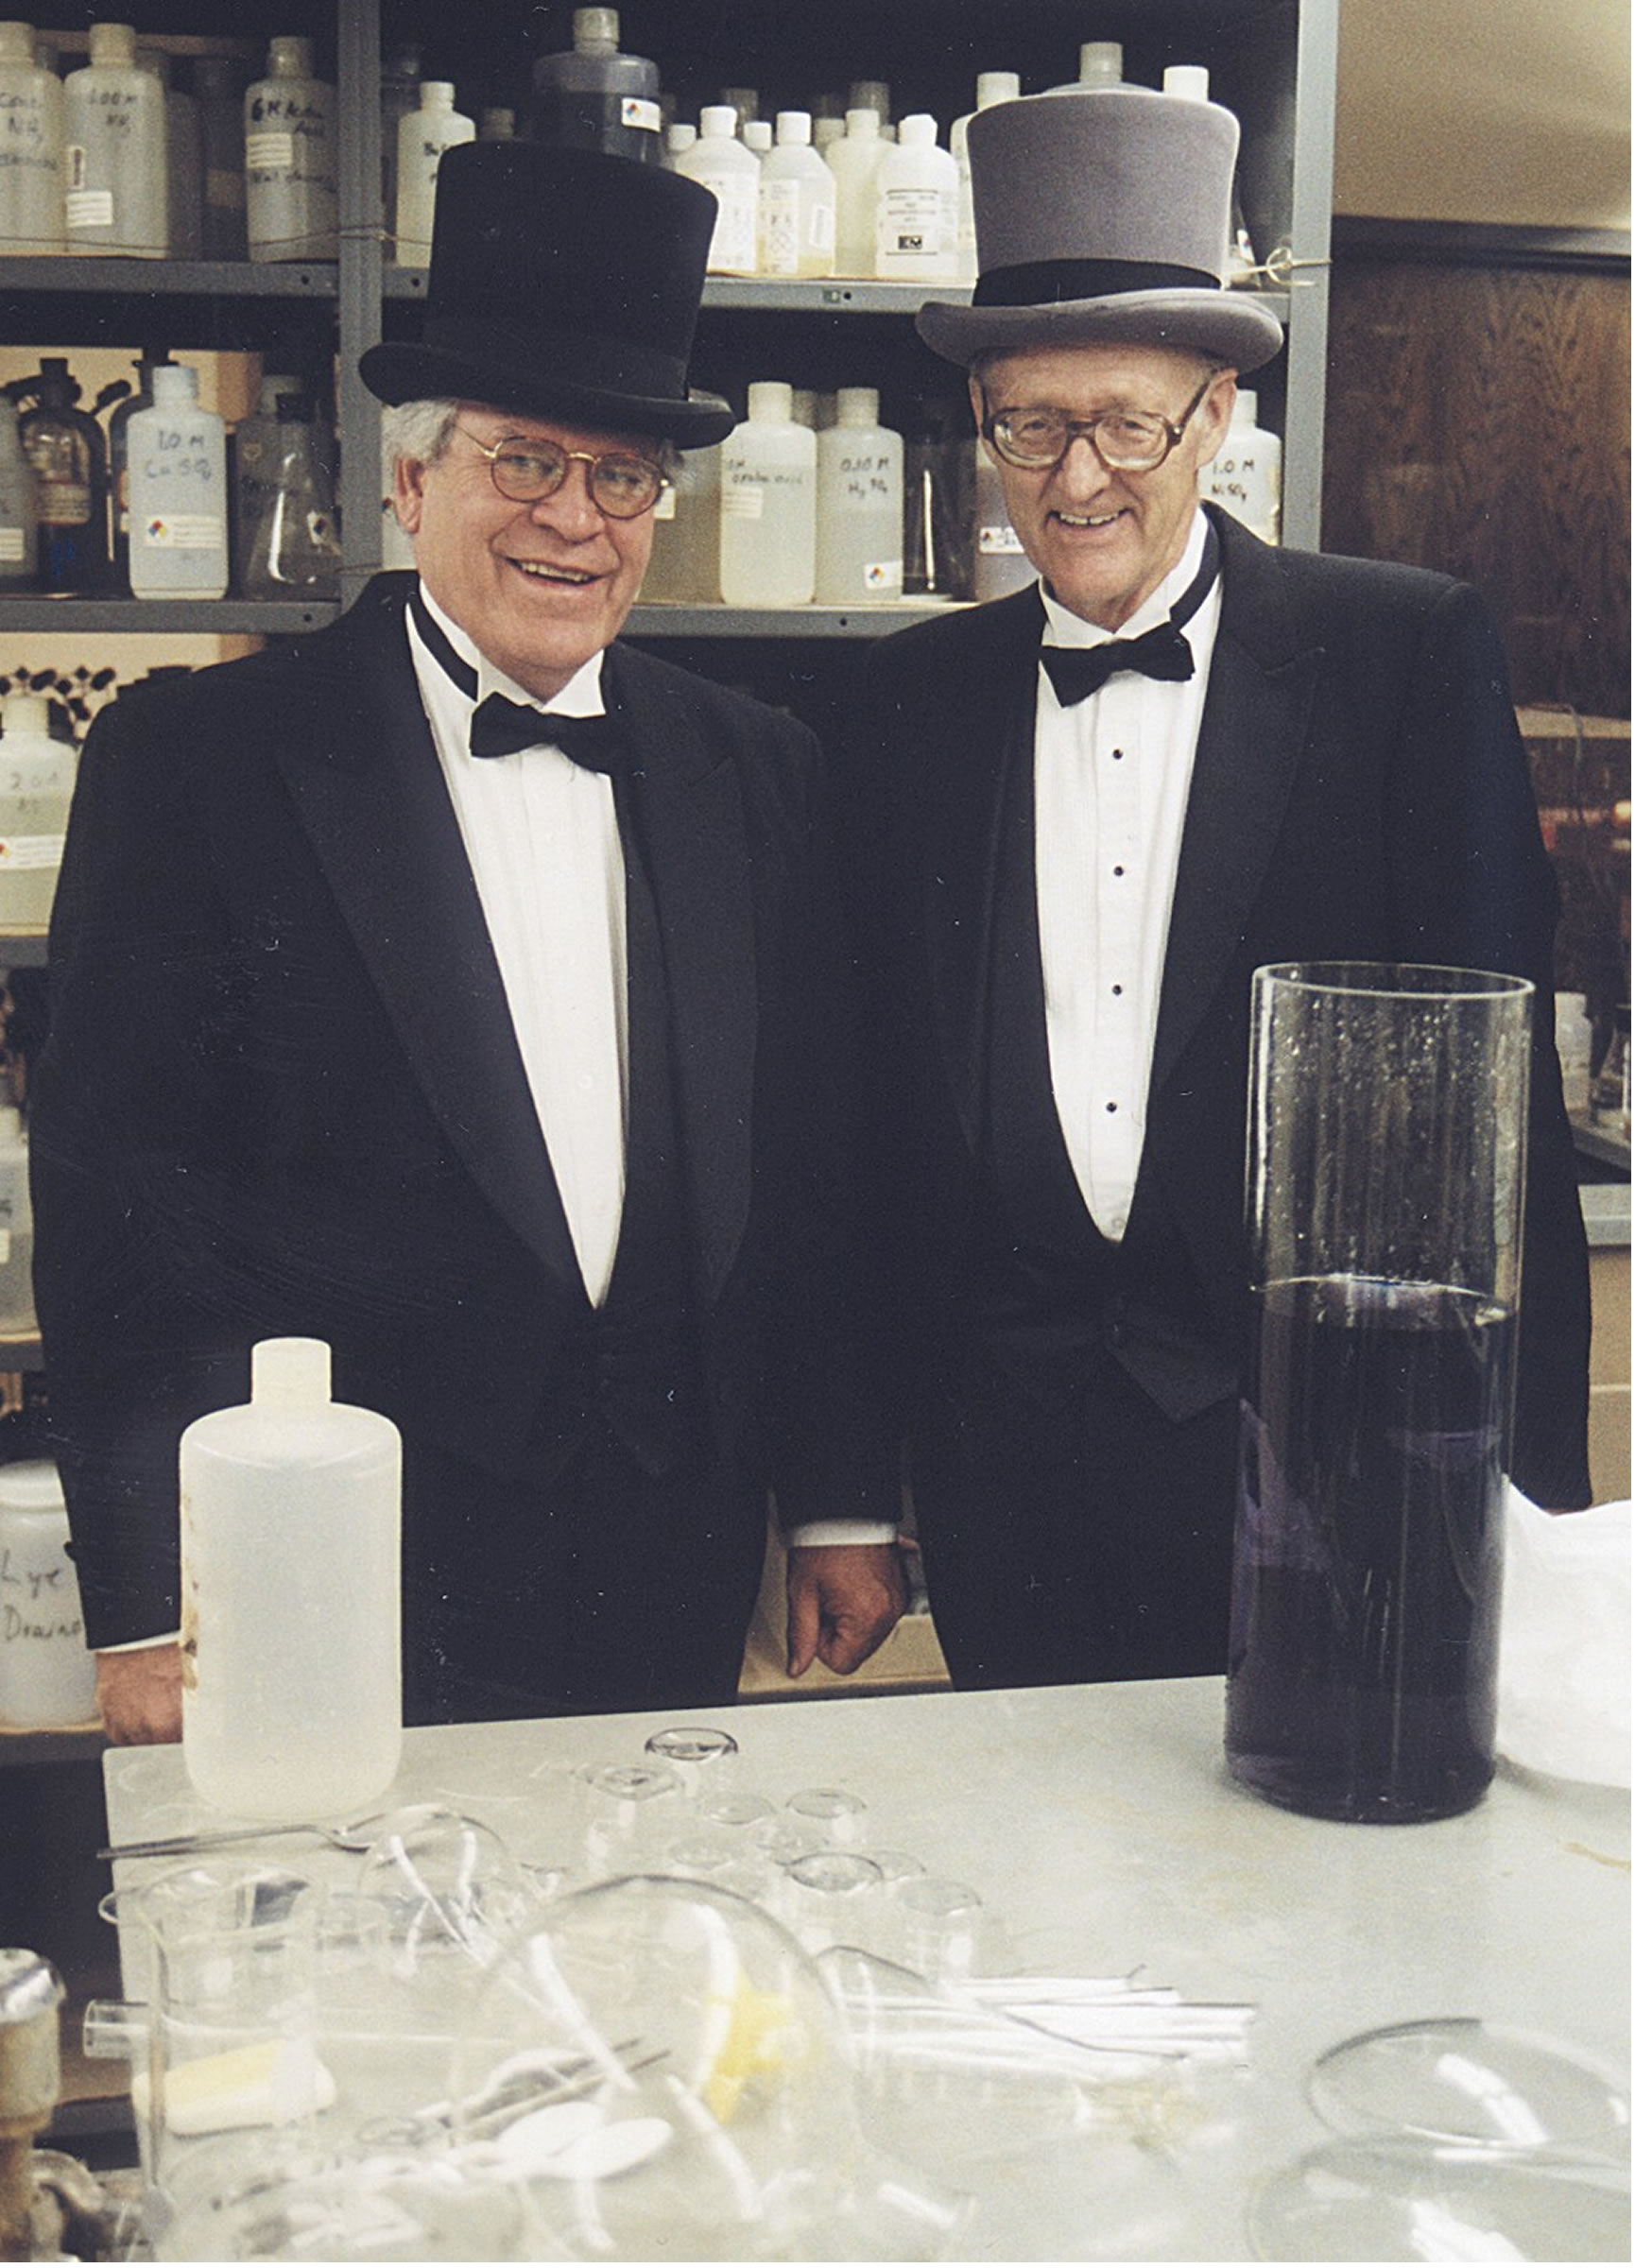 University of Utah chemists Jerry Driscoll and Ron Ragsdale dress as 19th century scientists for their annual Faraday Christmas Lectures. Their 2004 lectures will be their final performances after a 24-year run.